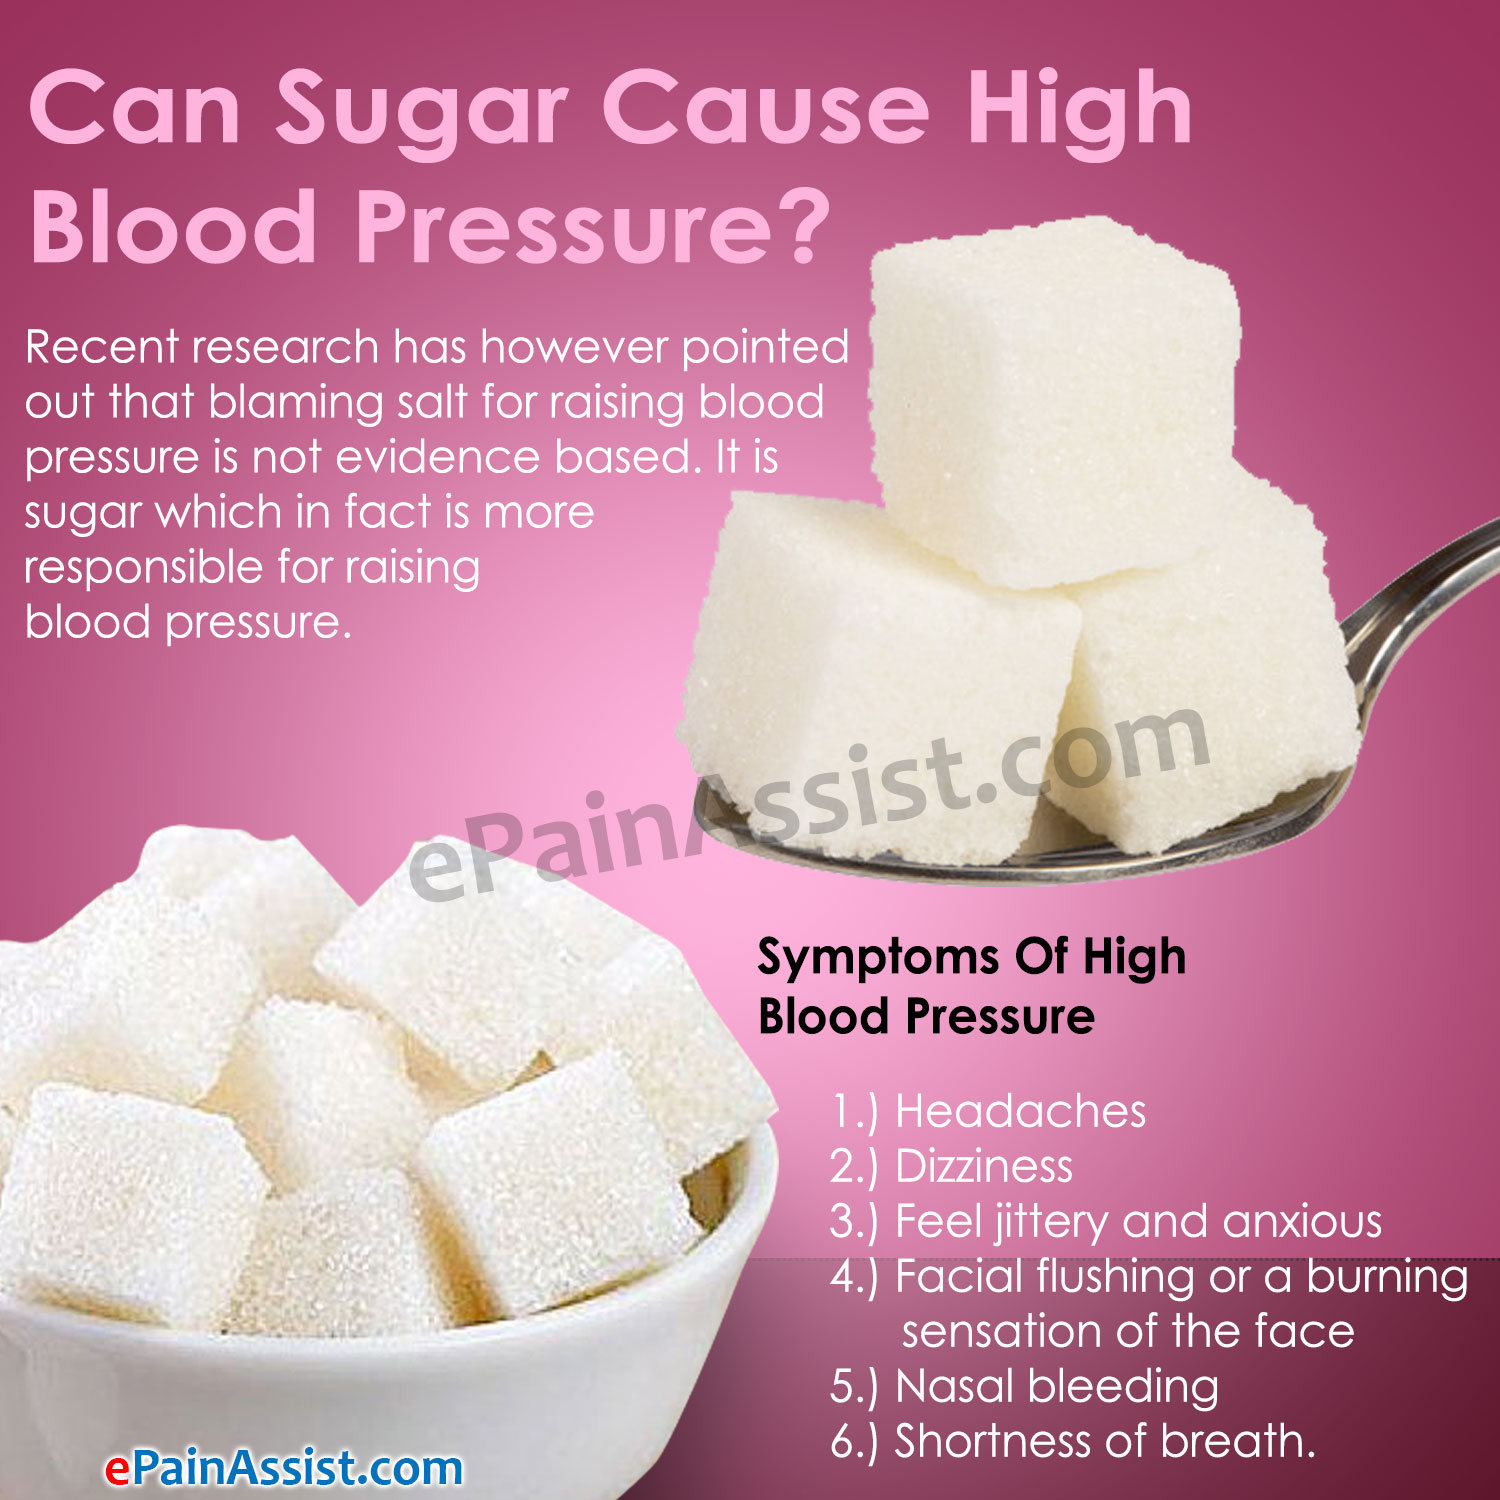 Can Sugar Cause High Blood Pressure